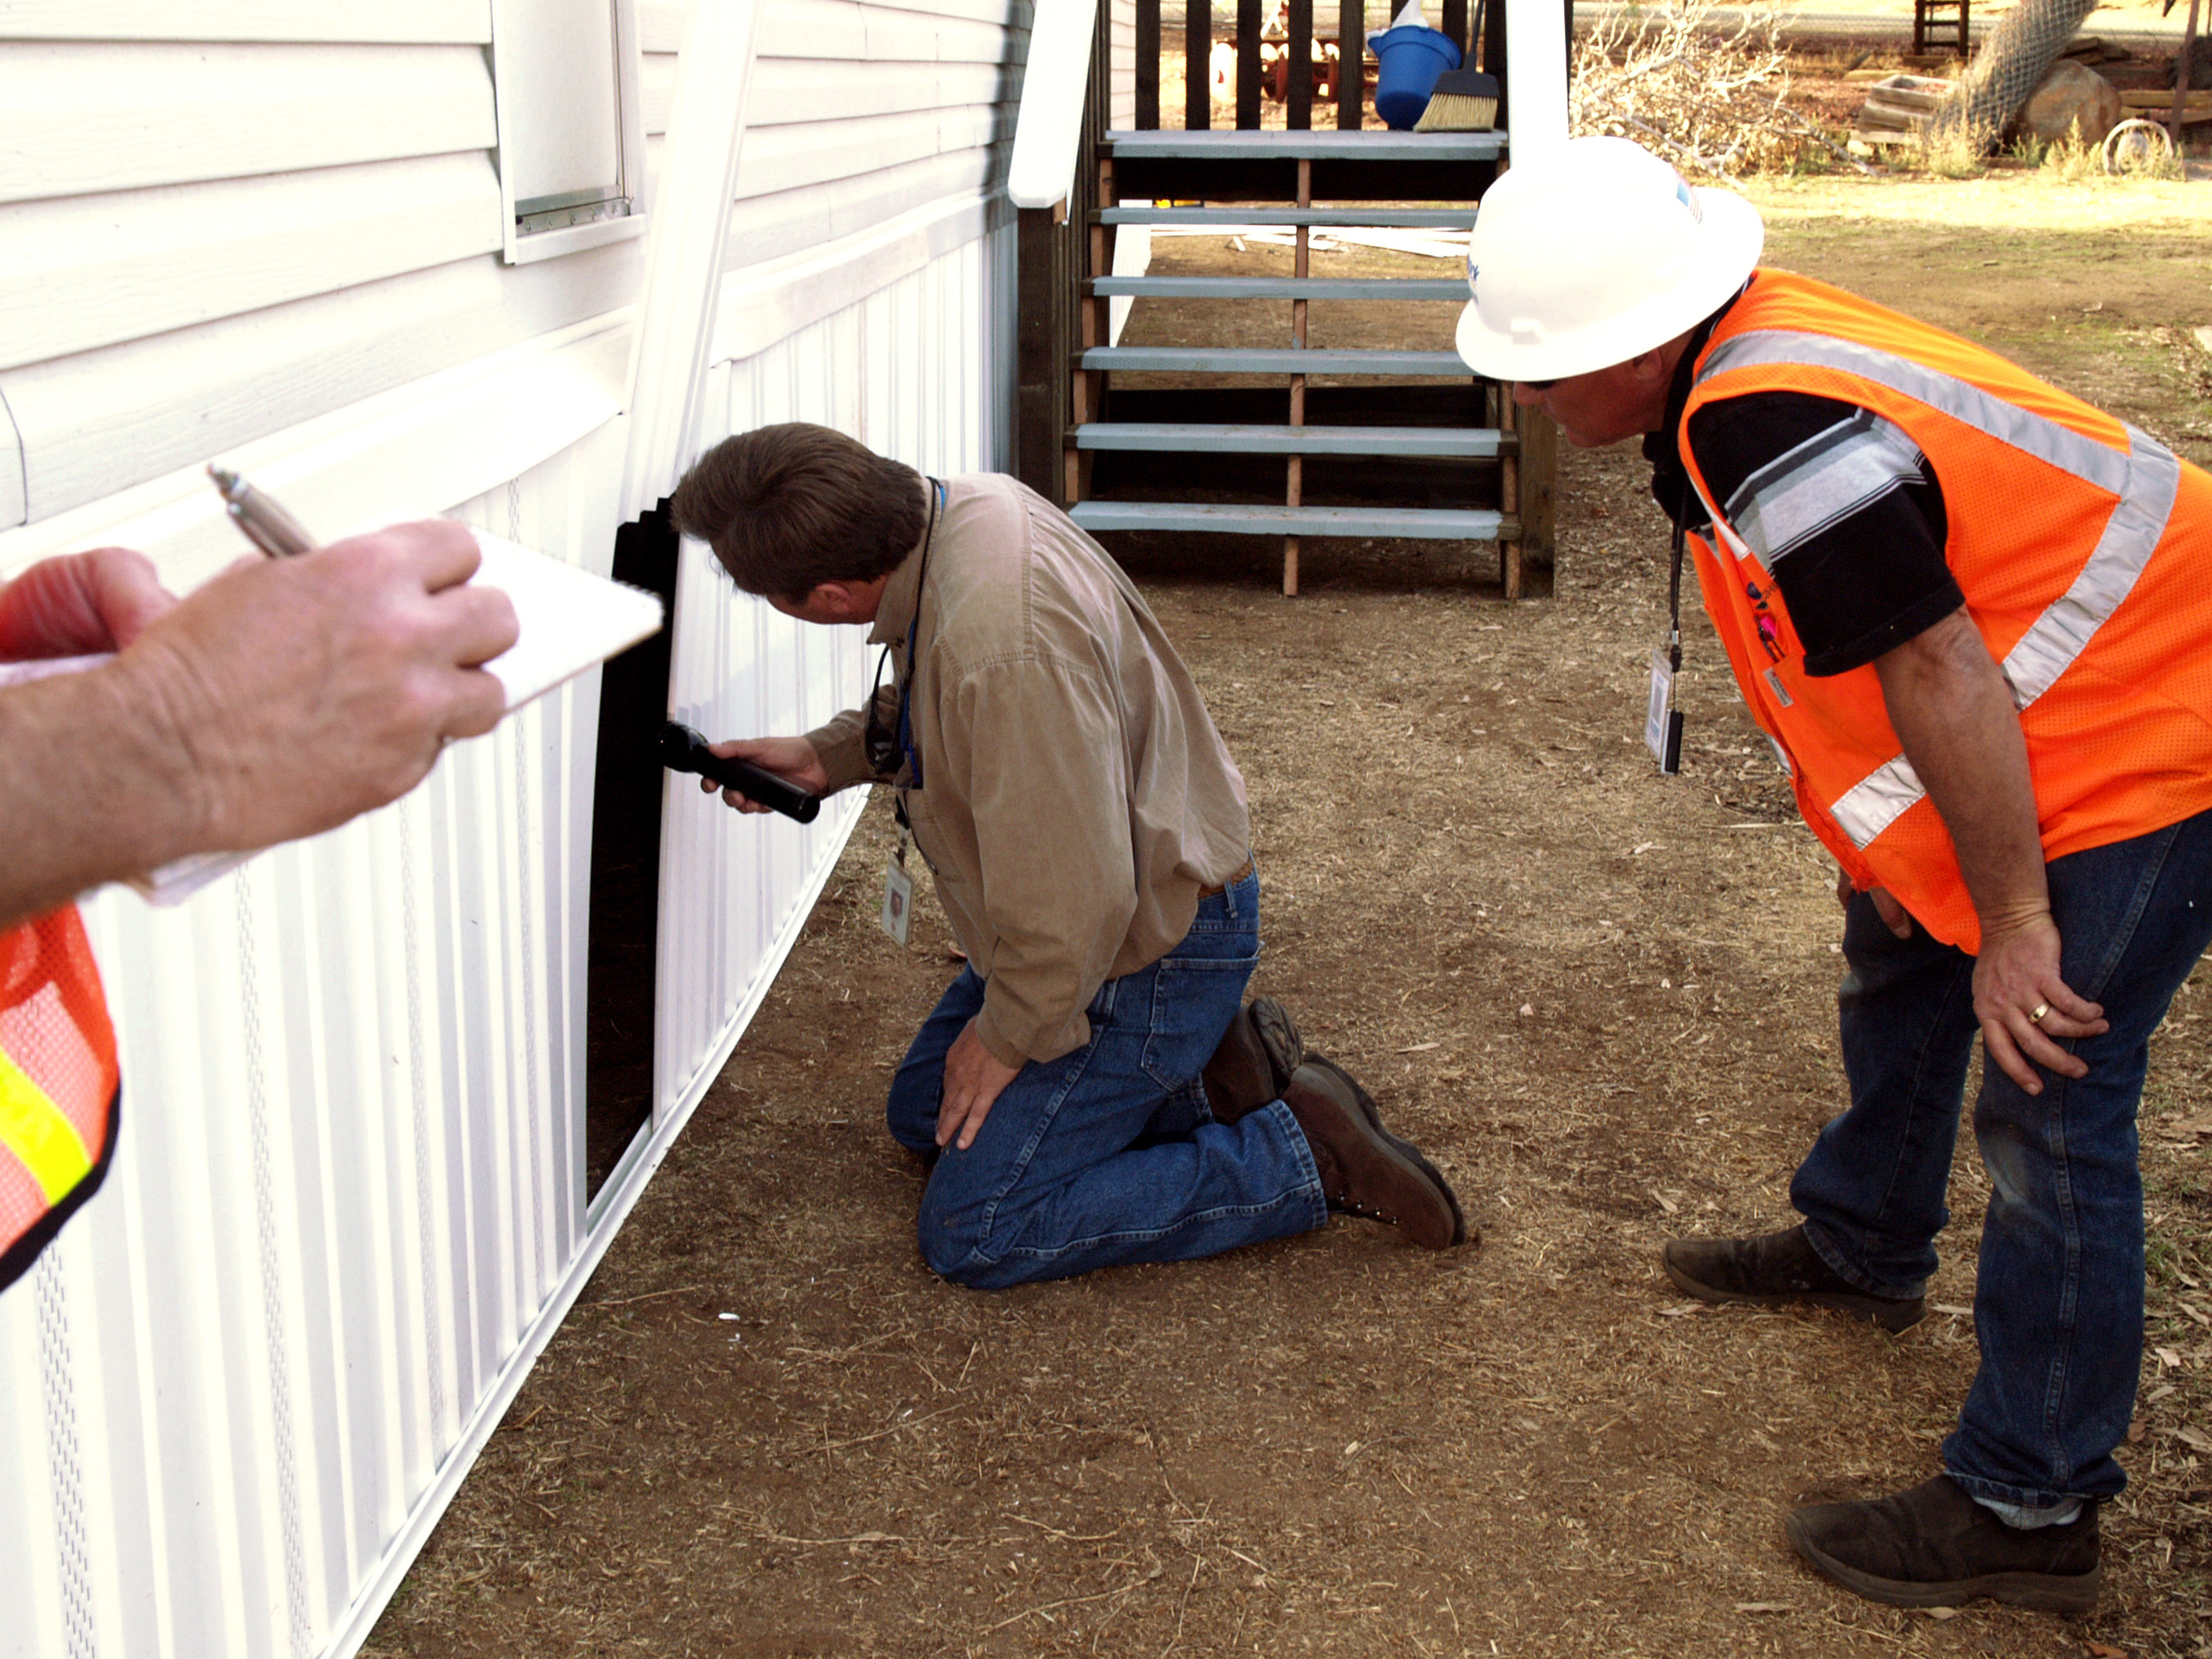 FEMA_-_33788_-_County_building_inspector_at_a_FEMA_supplied_mobile_home_in_California.jpg